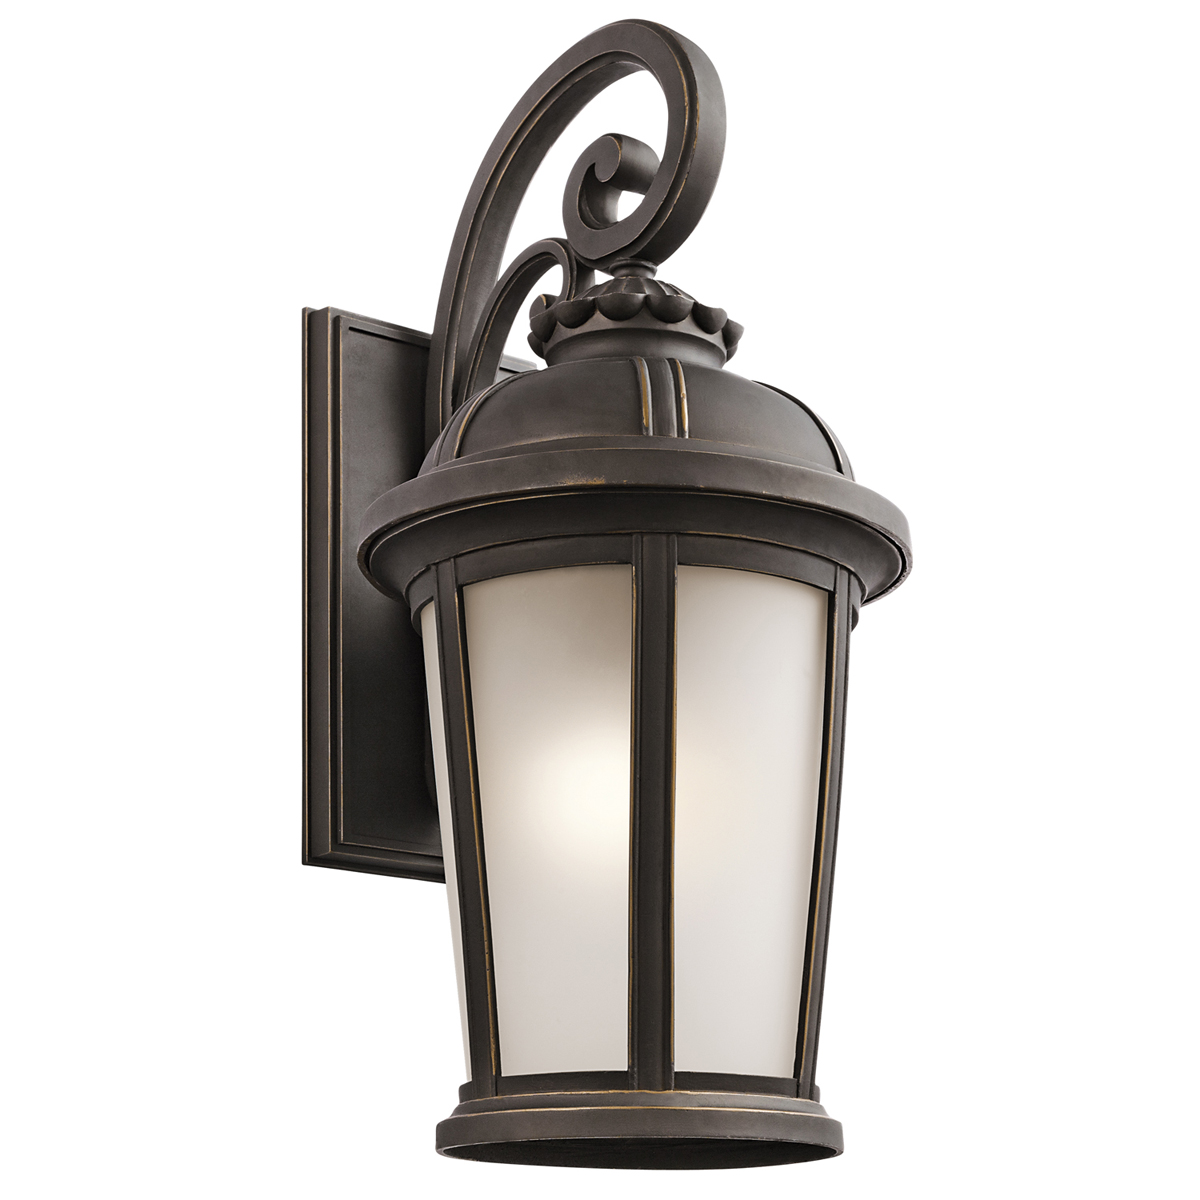 Large Wall Sconces Lighting : Kichler Lighting (49414RZ) Ralston 1-Light X-Large Outdoor Wall Sconce in Rubbed Bronze